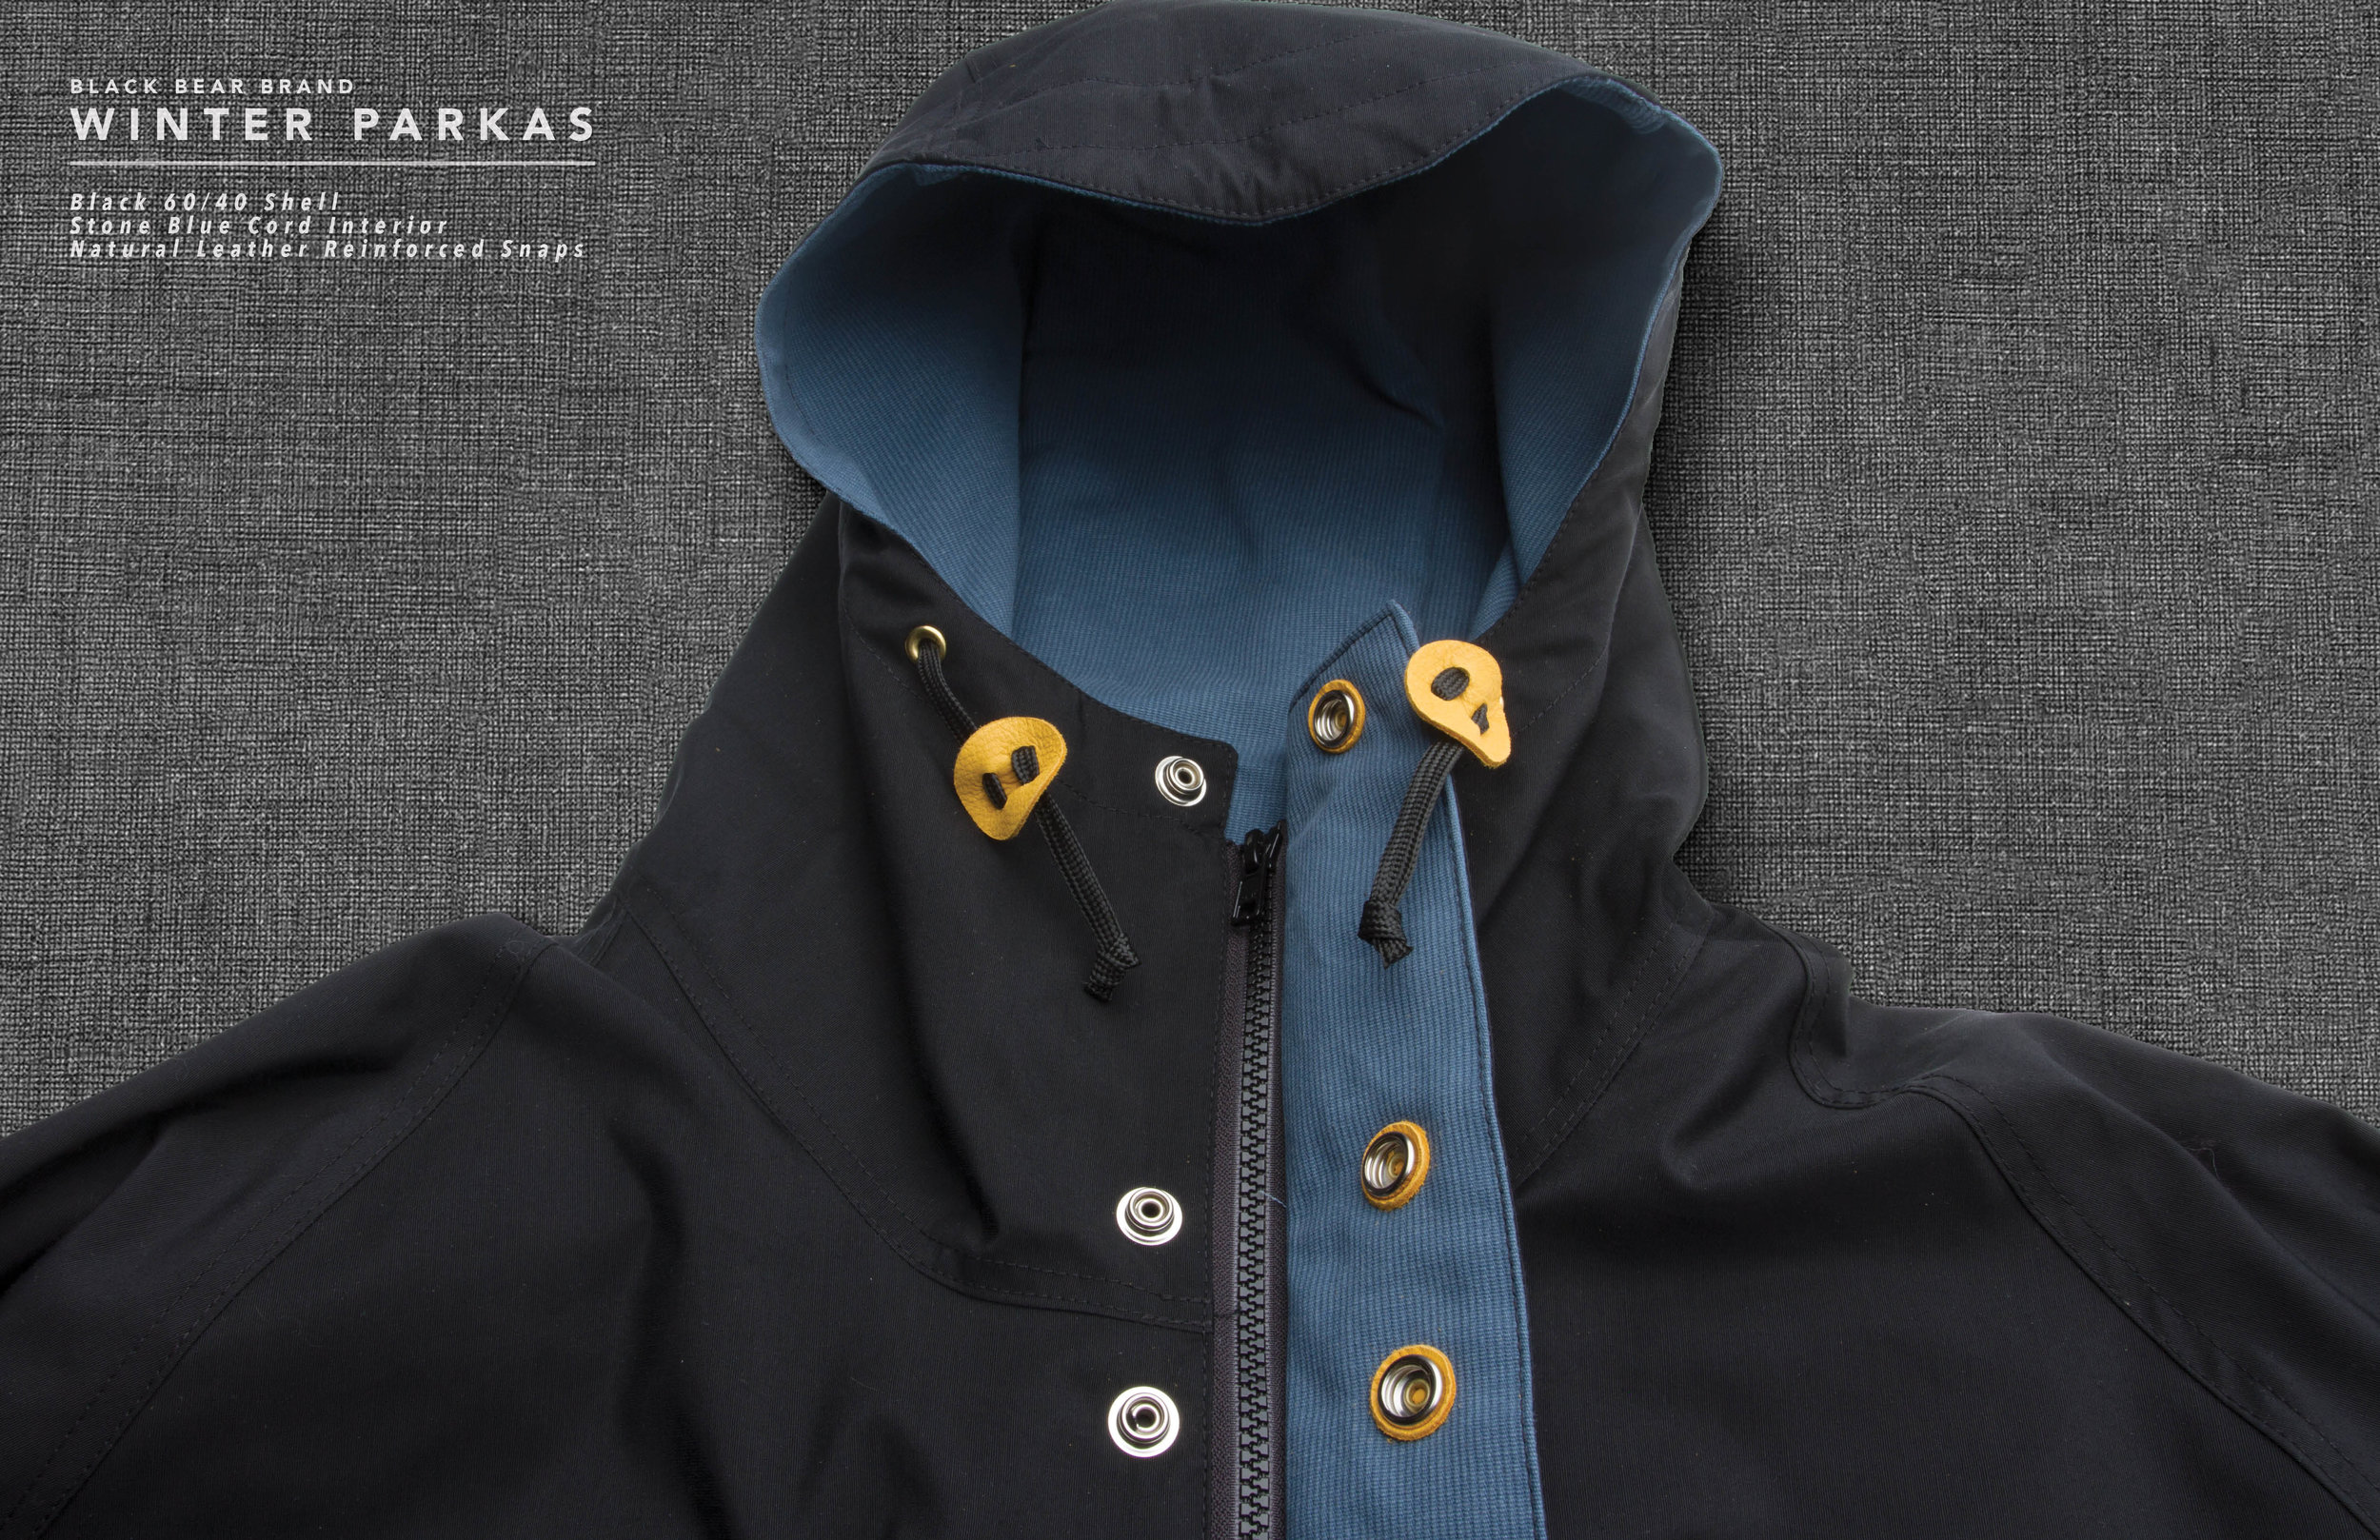 Black Bear Brand Winter 2016/17 Parkas